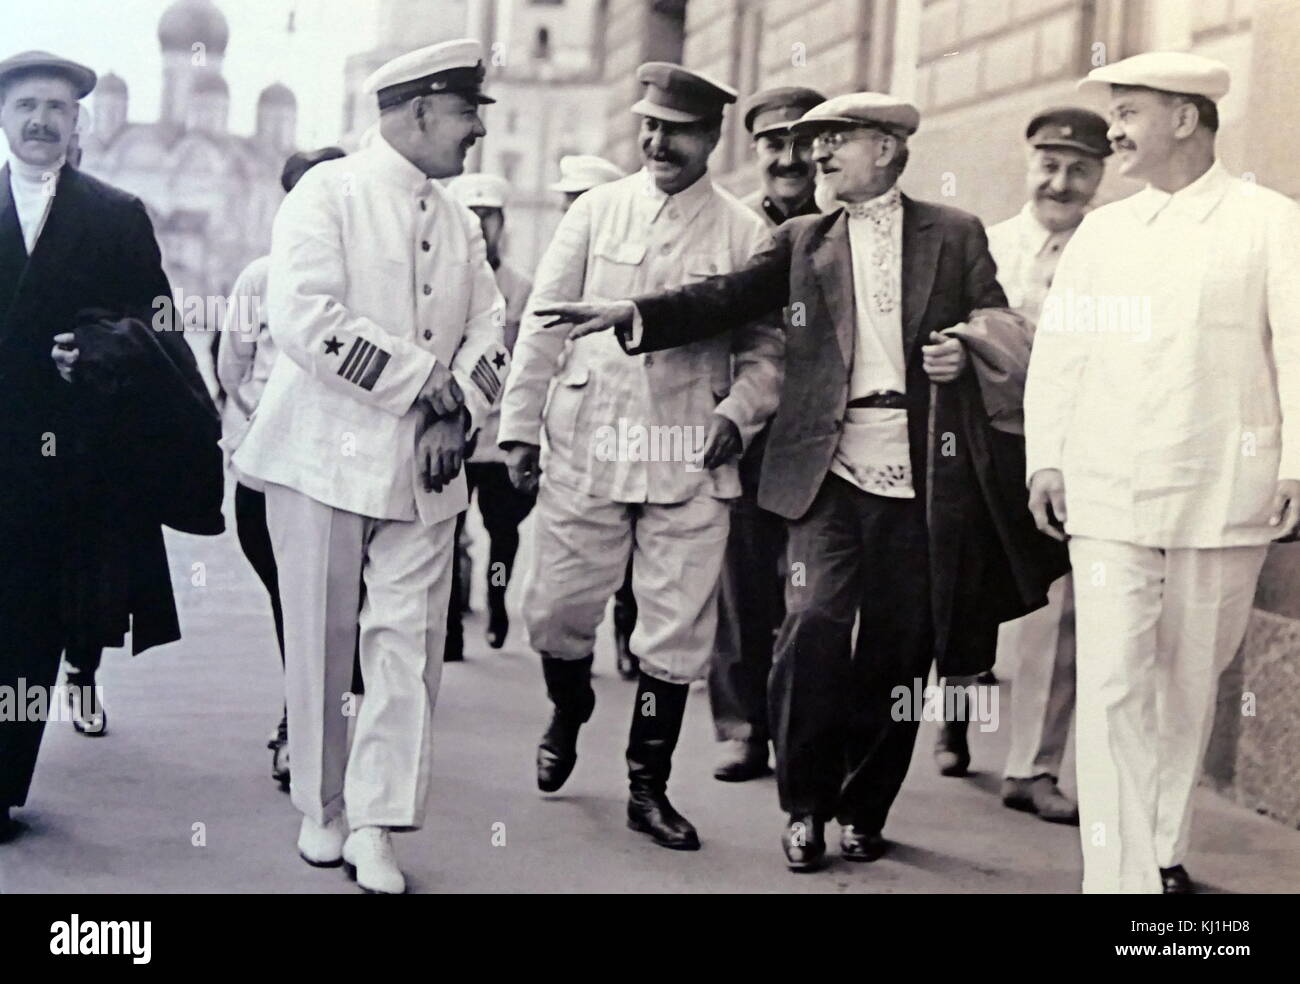 Members of the Soviet Russian Politburo of the CPSU and the Soviet government. Moscow. 1936. From left to right: - Stock Image